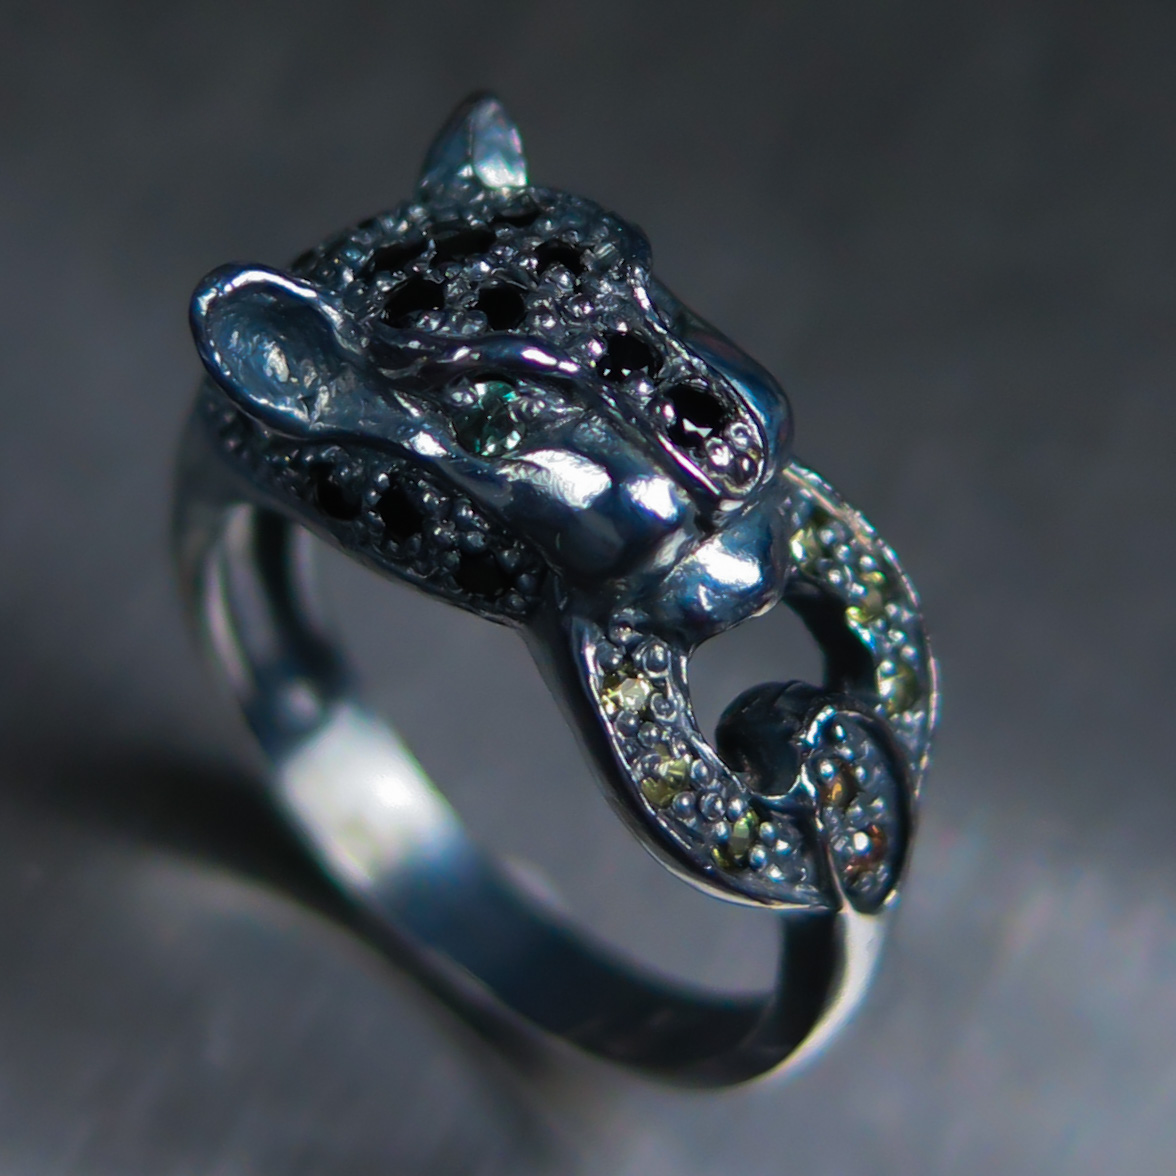 milano j at silver nv oxidized jewelry n engagement ok v diamond id sale ring z for look cut rings org knot